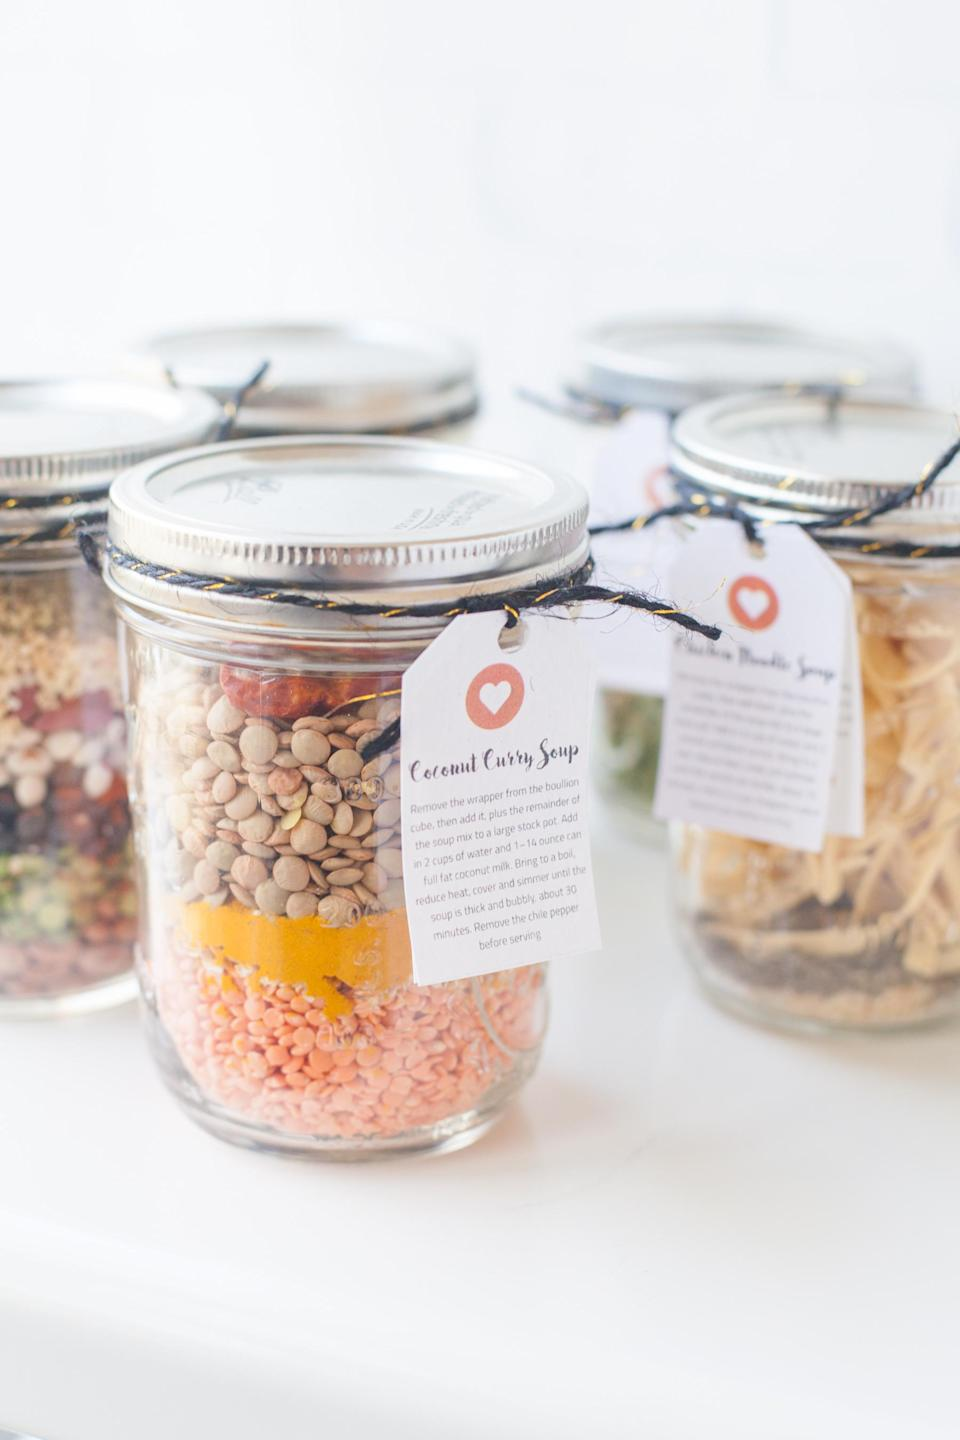 "<p>Homemade soups, jams or chutneys are great gifts in theory, but they don't always look so appetising by the time you've finished making them. Instead, go back to basics and make cute homemade soup jars, which have the benefit of tasting great, and also being really Instagrammable. Find the recipes <strong><a href=""https://wholefully.com/homemade-soup-mixes-in-a-jar/"" rel=""nofollow noopener"" target=""_blank"" data-ylk=""slk:here"" class=""link rapid-noclick-resp"">here</a></strong>. <br><em>[photo: wholefully]</em> </p>"